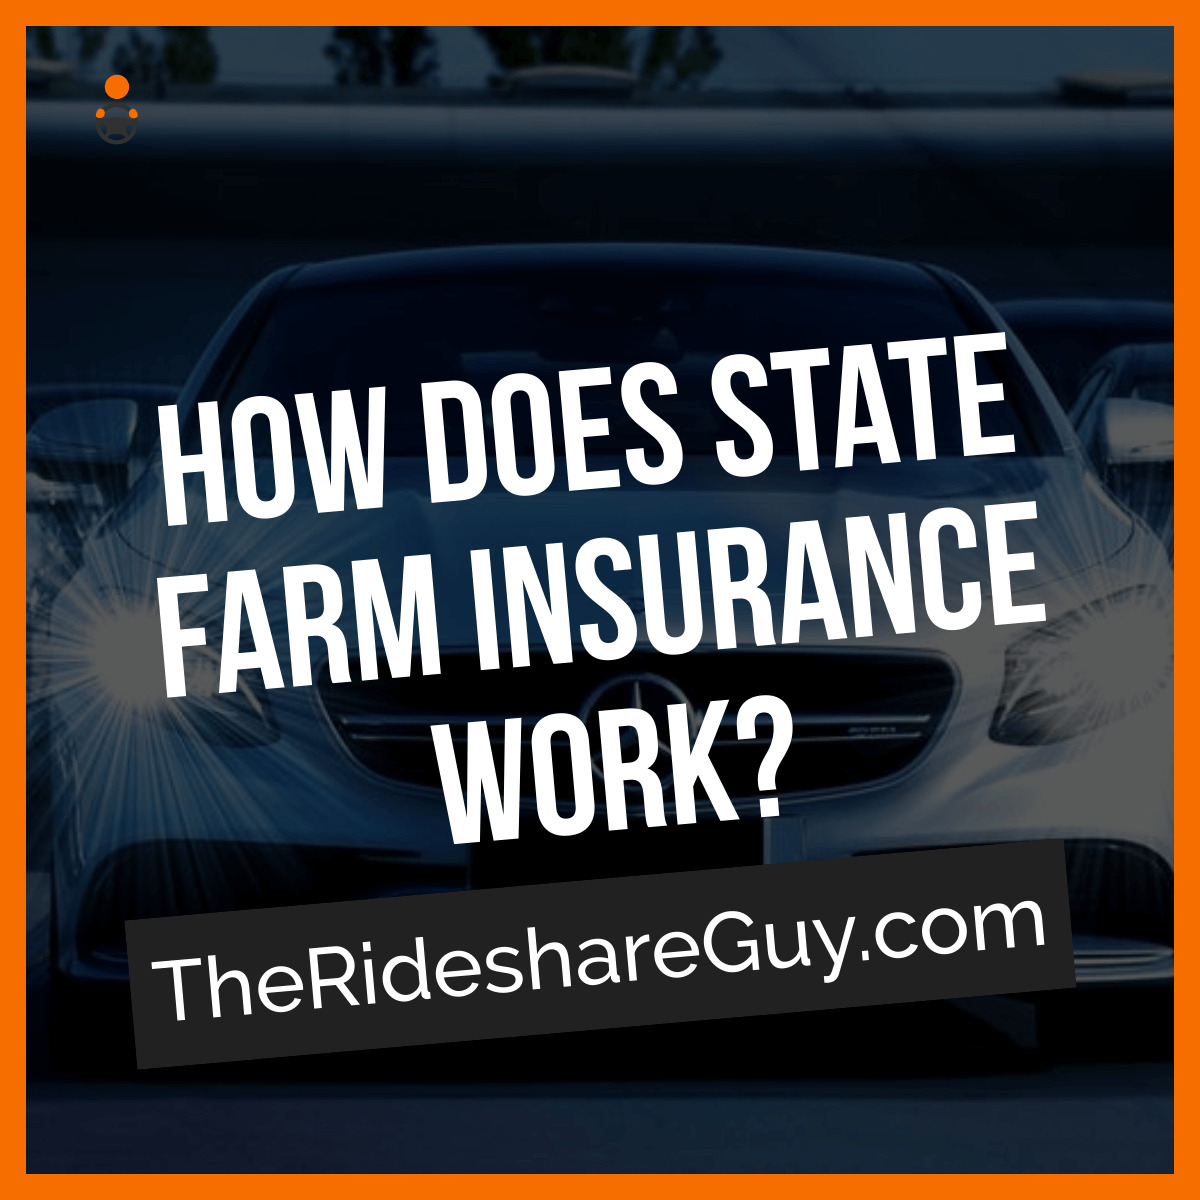 How Does State Farm Rideshare Insurance Work?